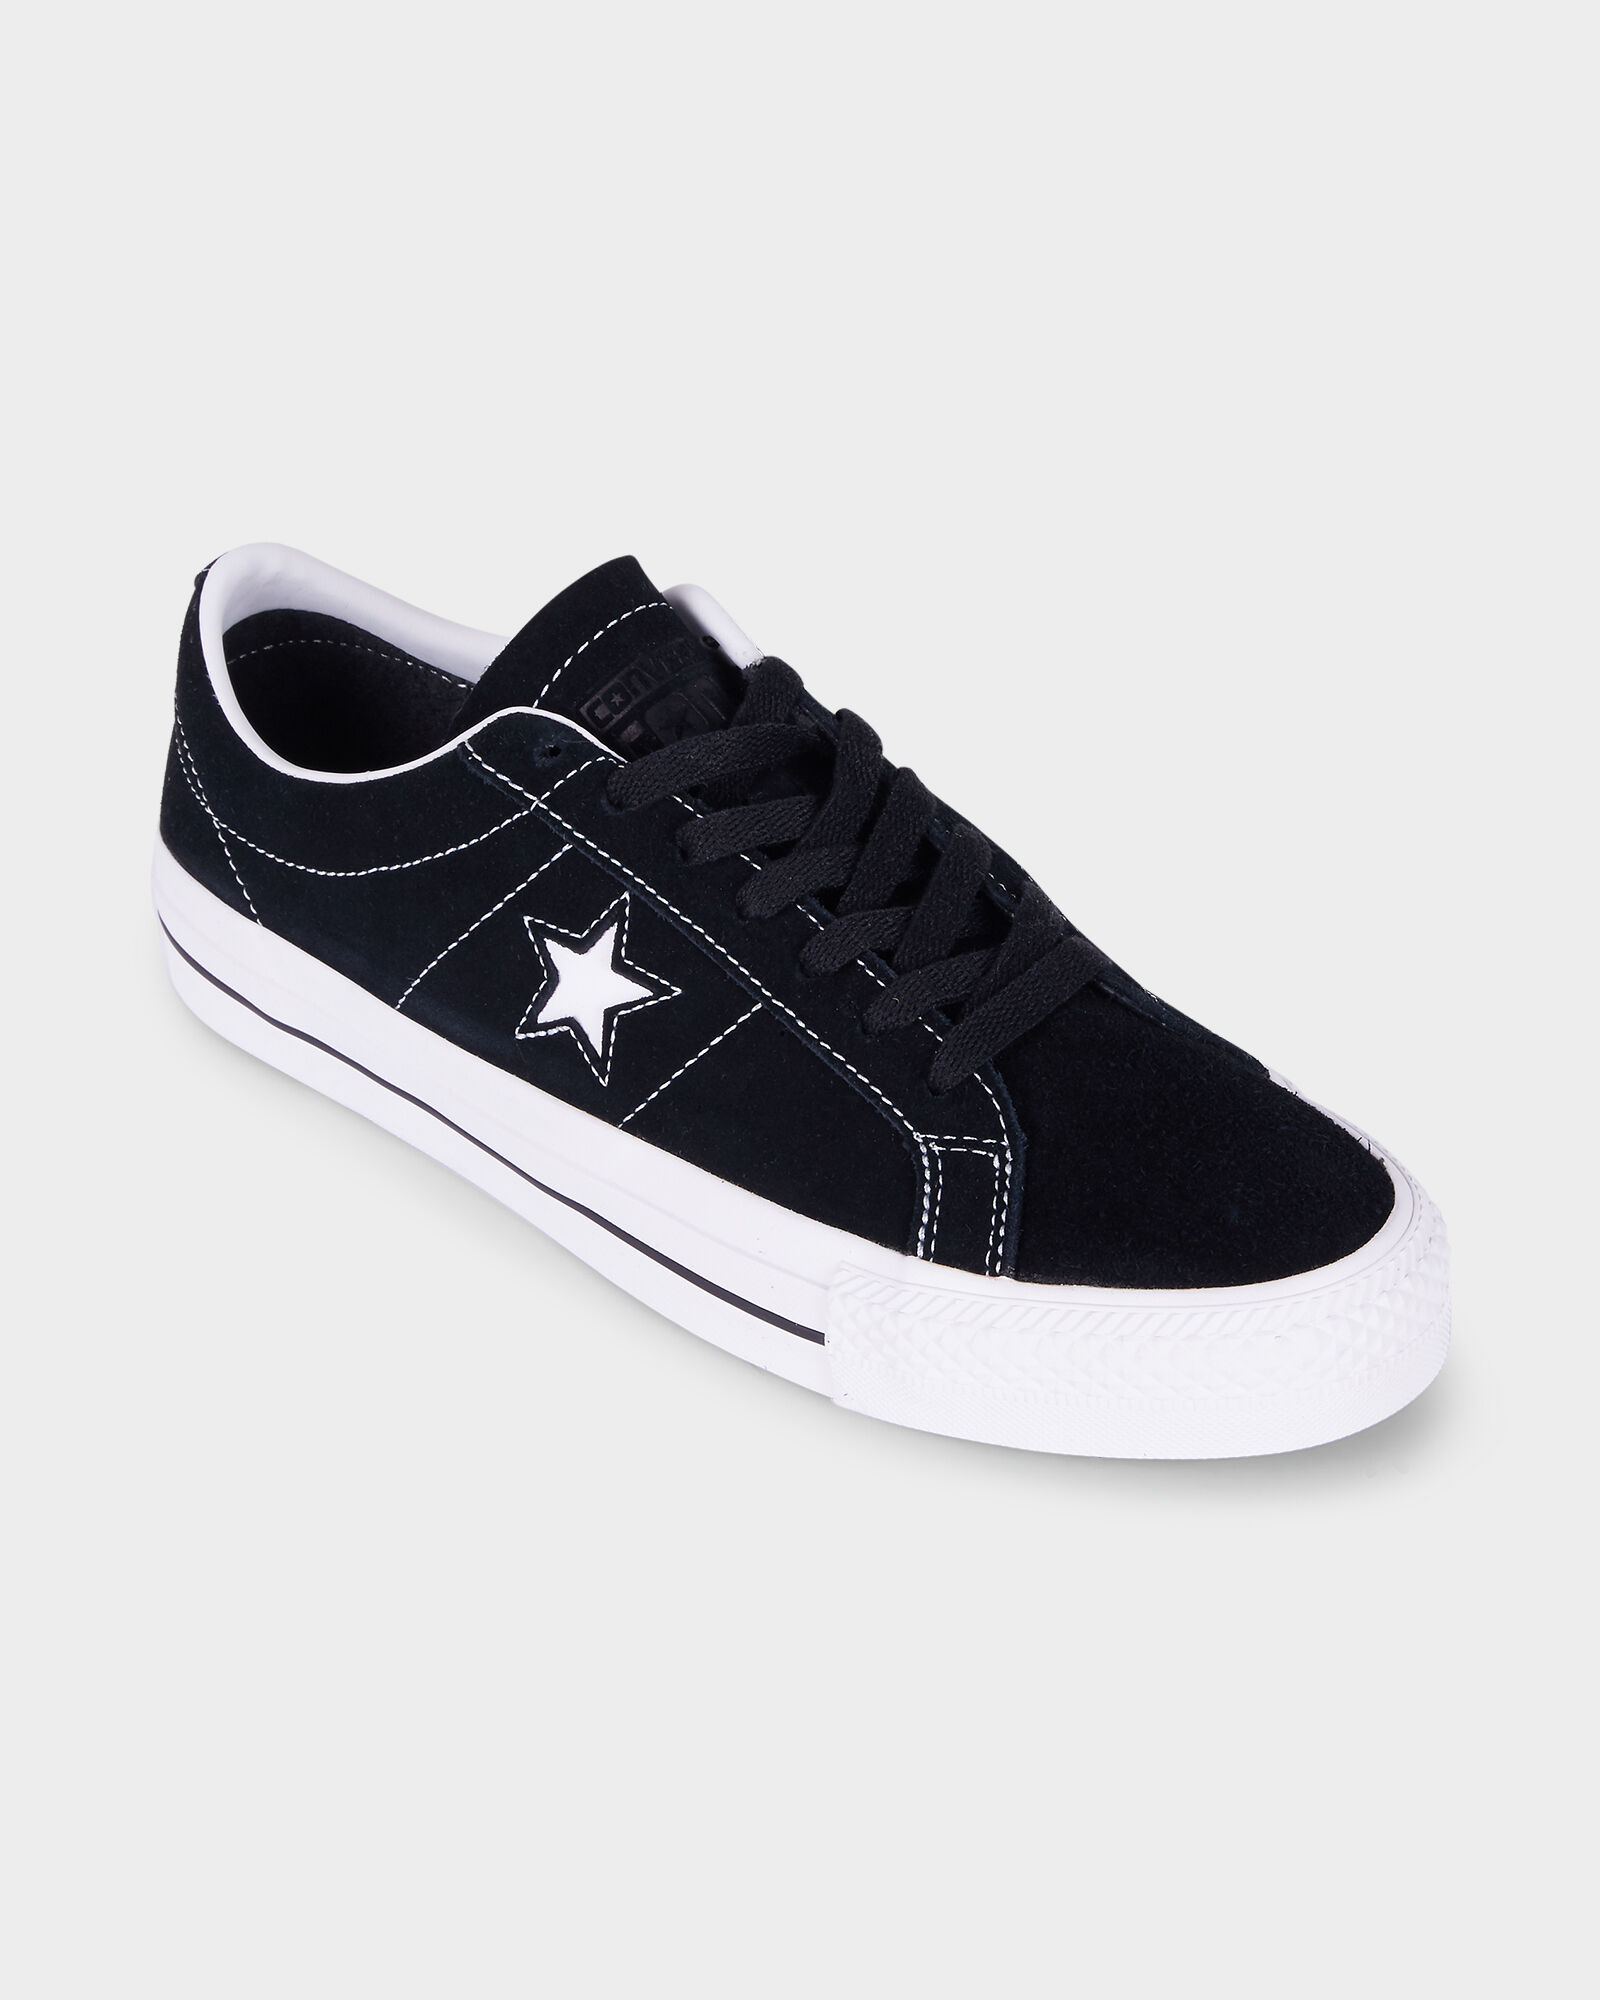 Black CONVERSE ONE STAR PRO LOW SUEDE BLACKWHITE SHOE